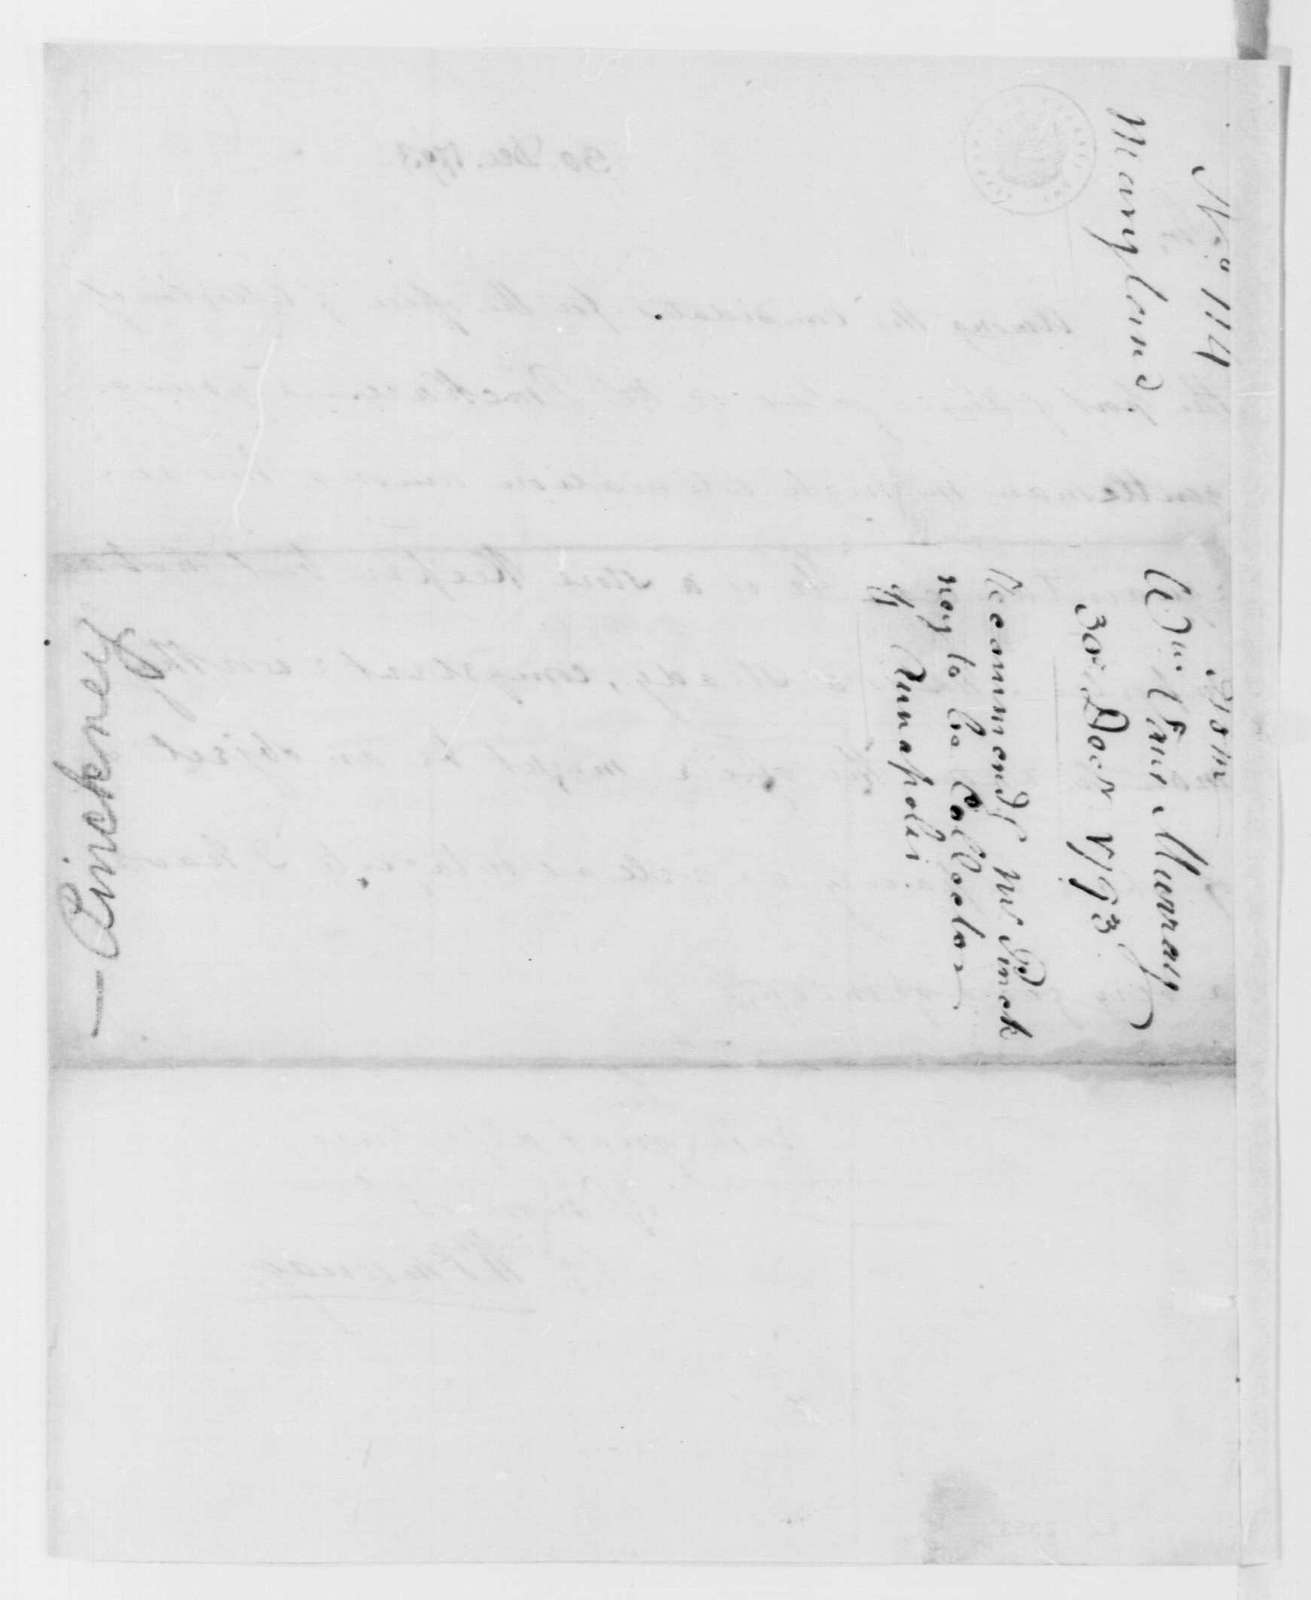 George Washington Papers, Series 7, Applications for Office, 1789-1796: Pinckney